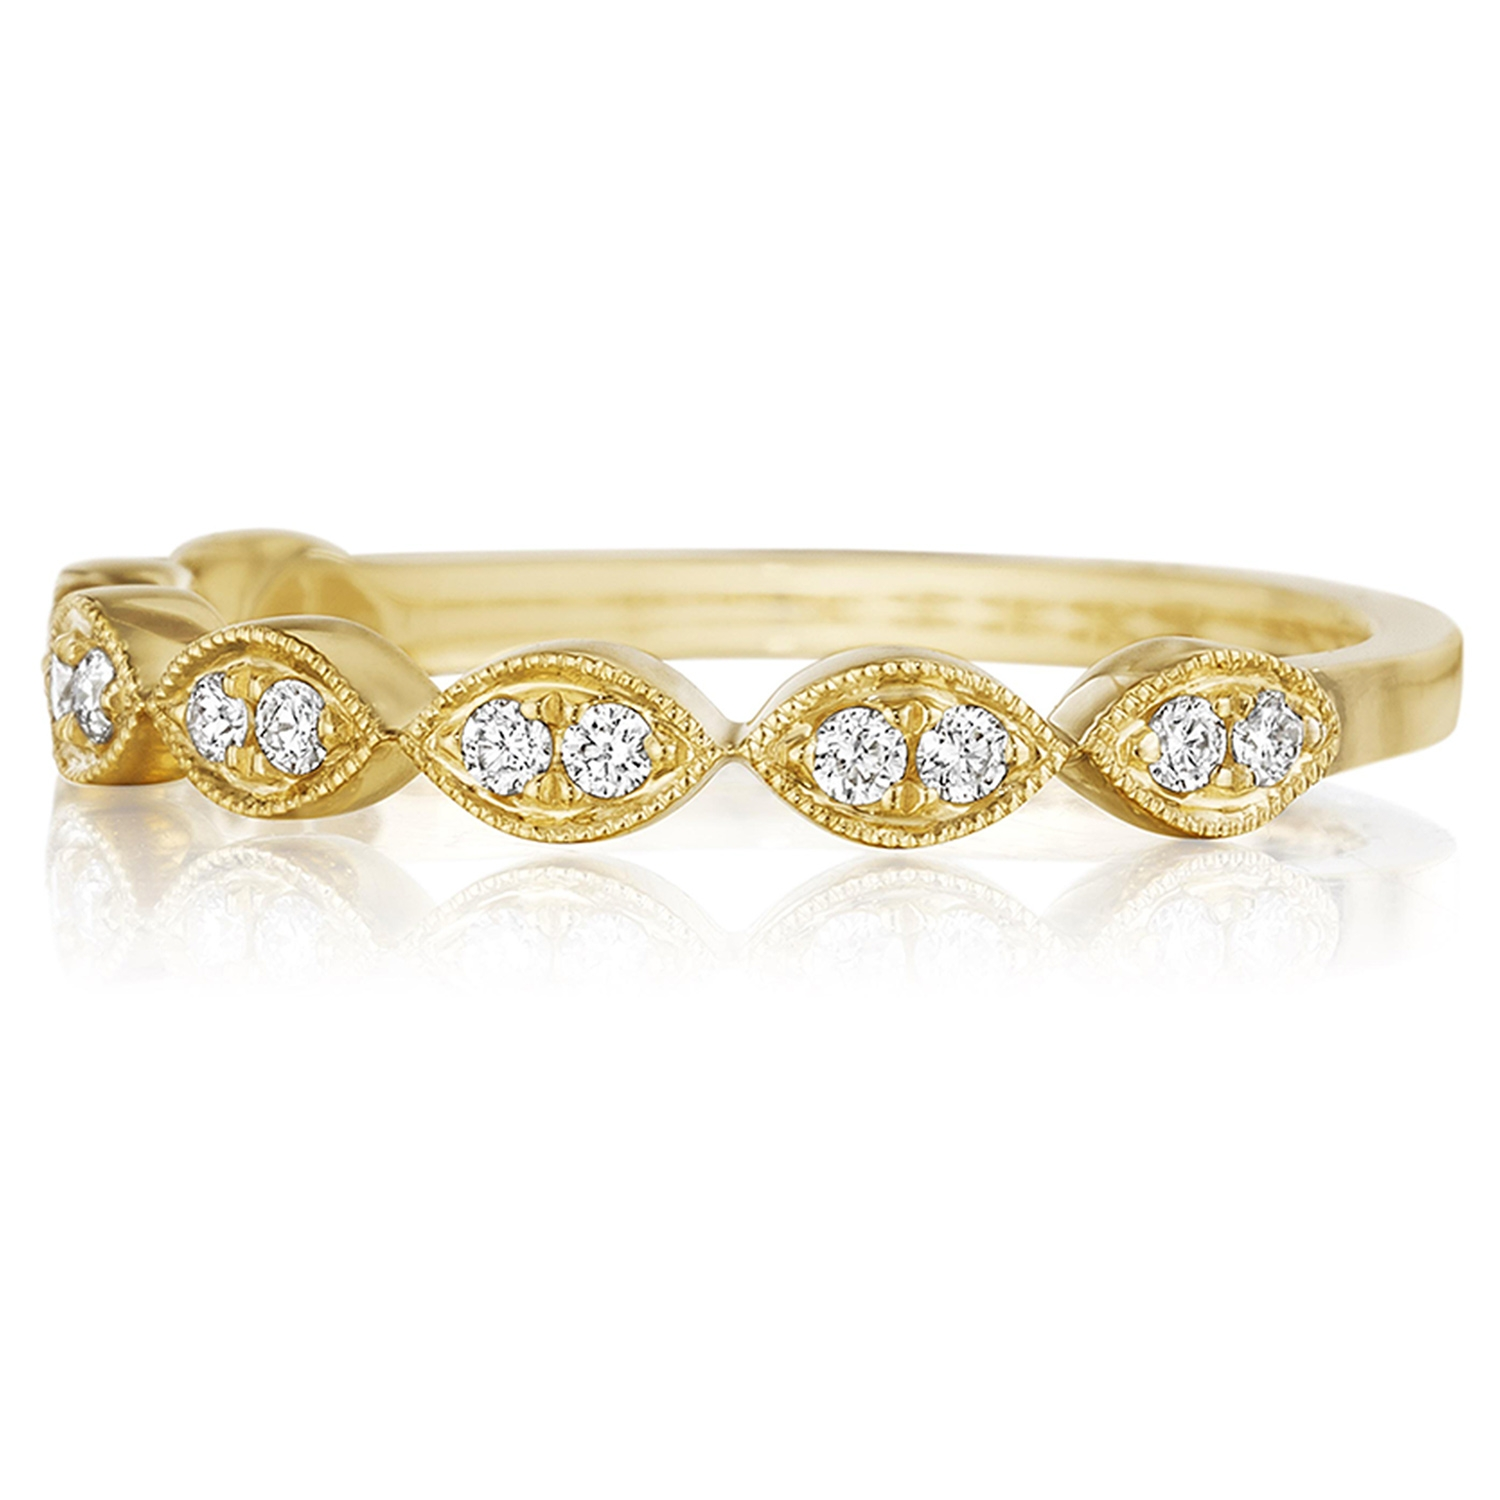 Henri Daussi R42-3 Yellow Gold Bead Set Diamond Band with Miligrain Detail Alternative View 1